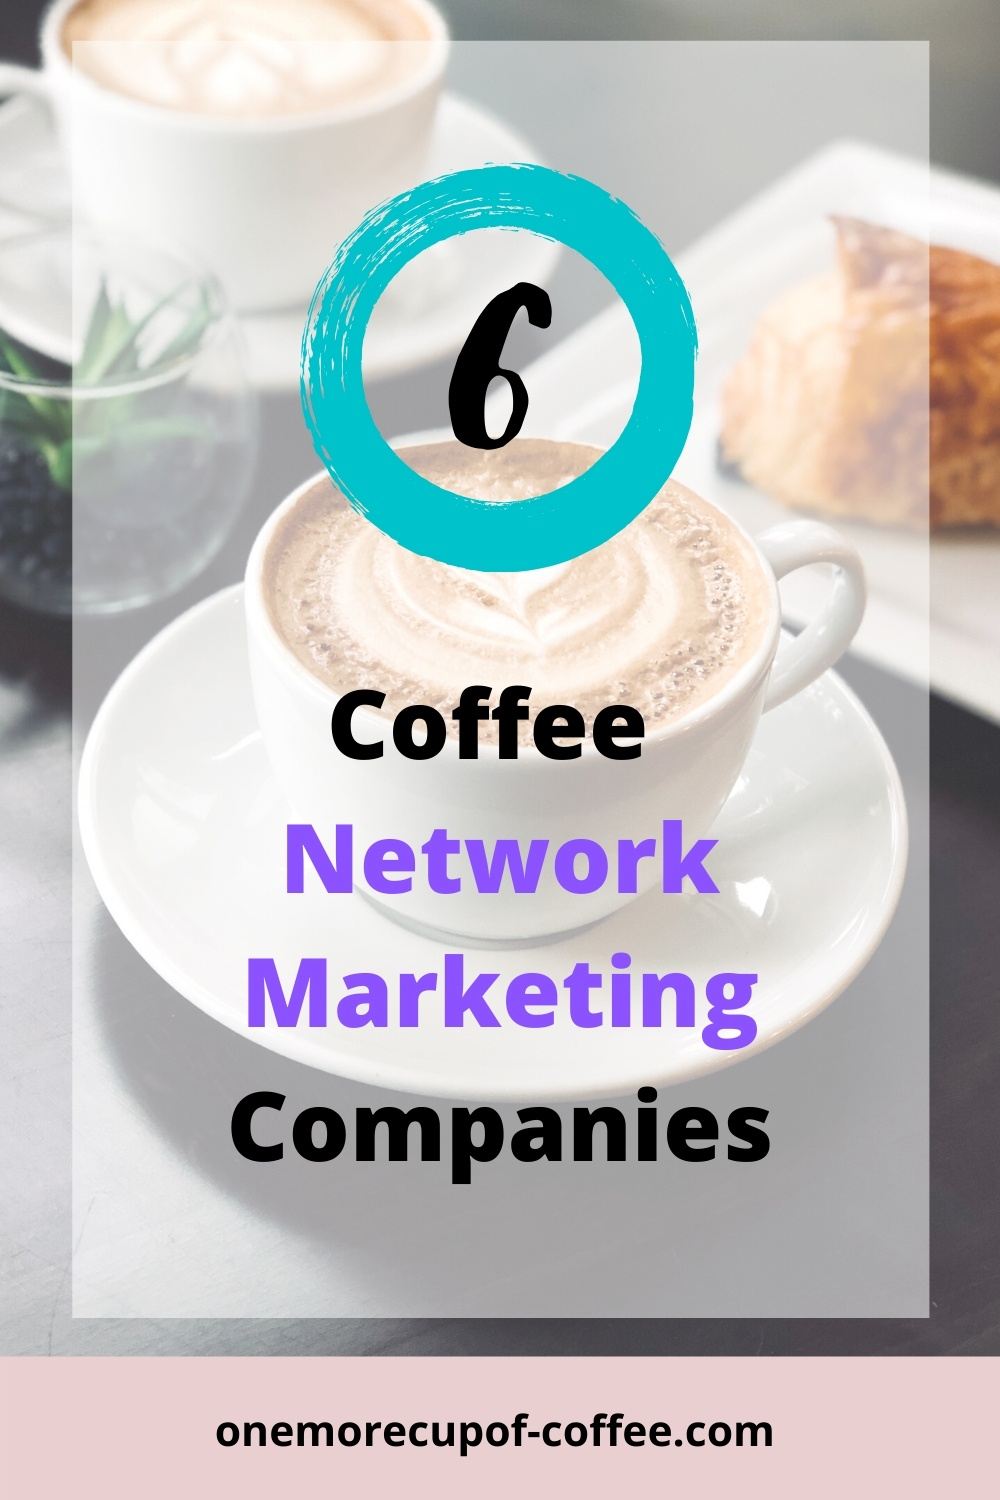 Coffee cup to represent Coffee Network Marketing Companies